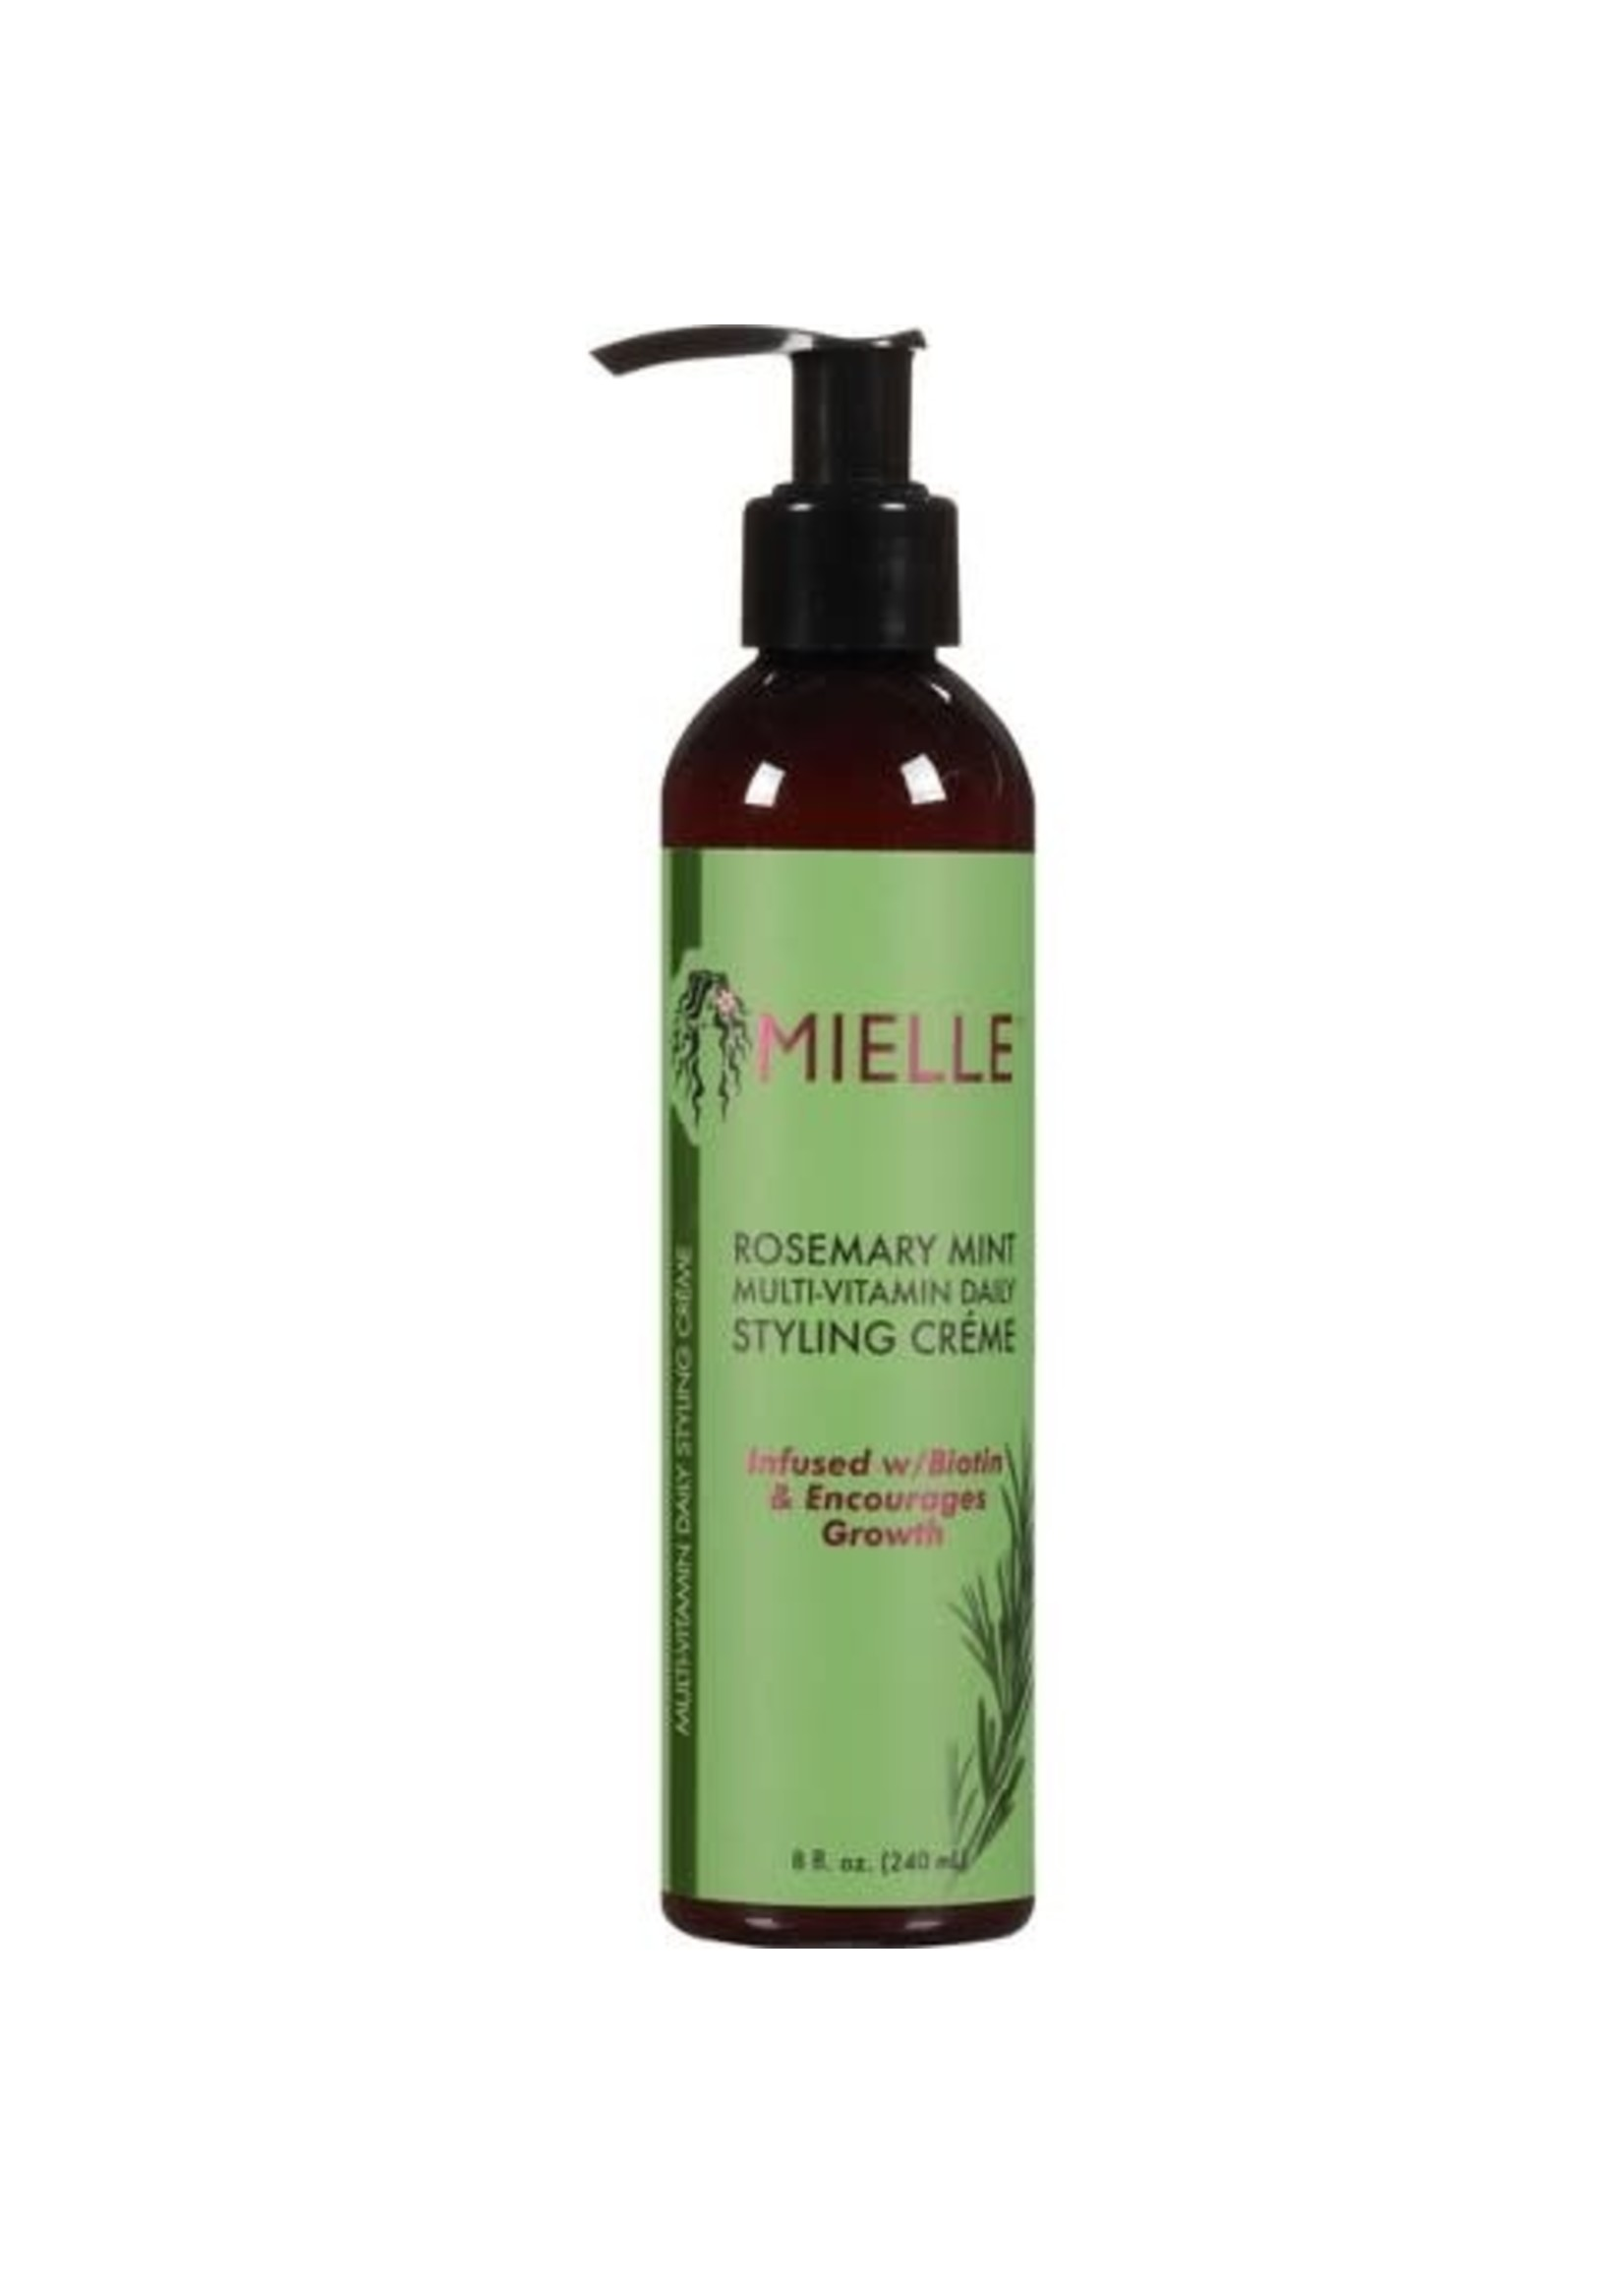 Mielle Rosemary Mint Styling Cream 8oz